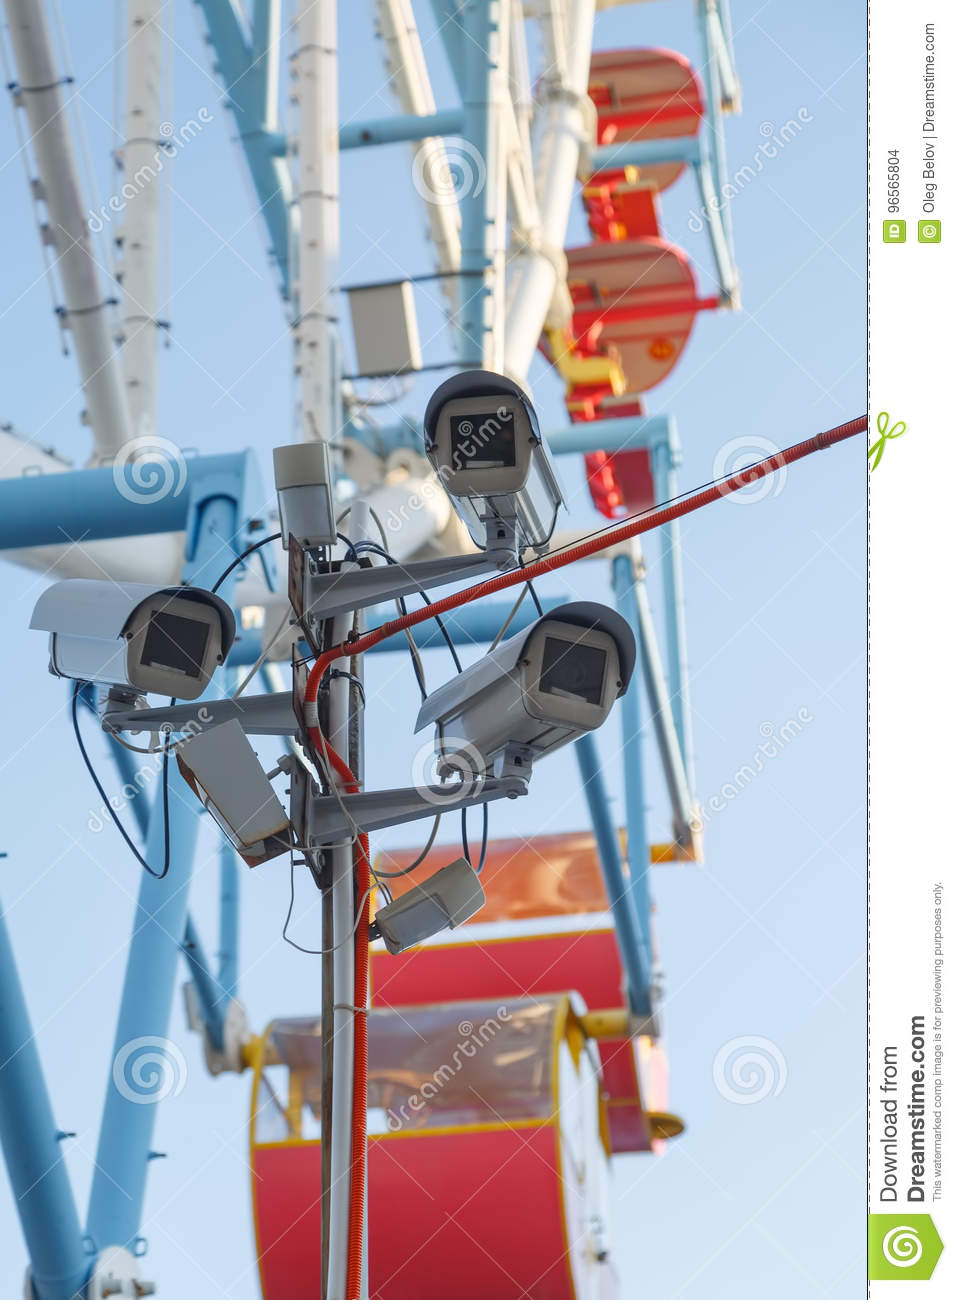 Several video cameras are monitoring the public order in the amusement park